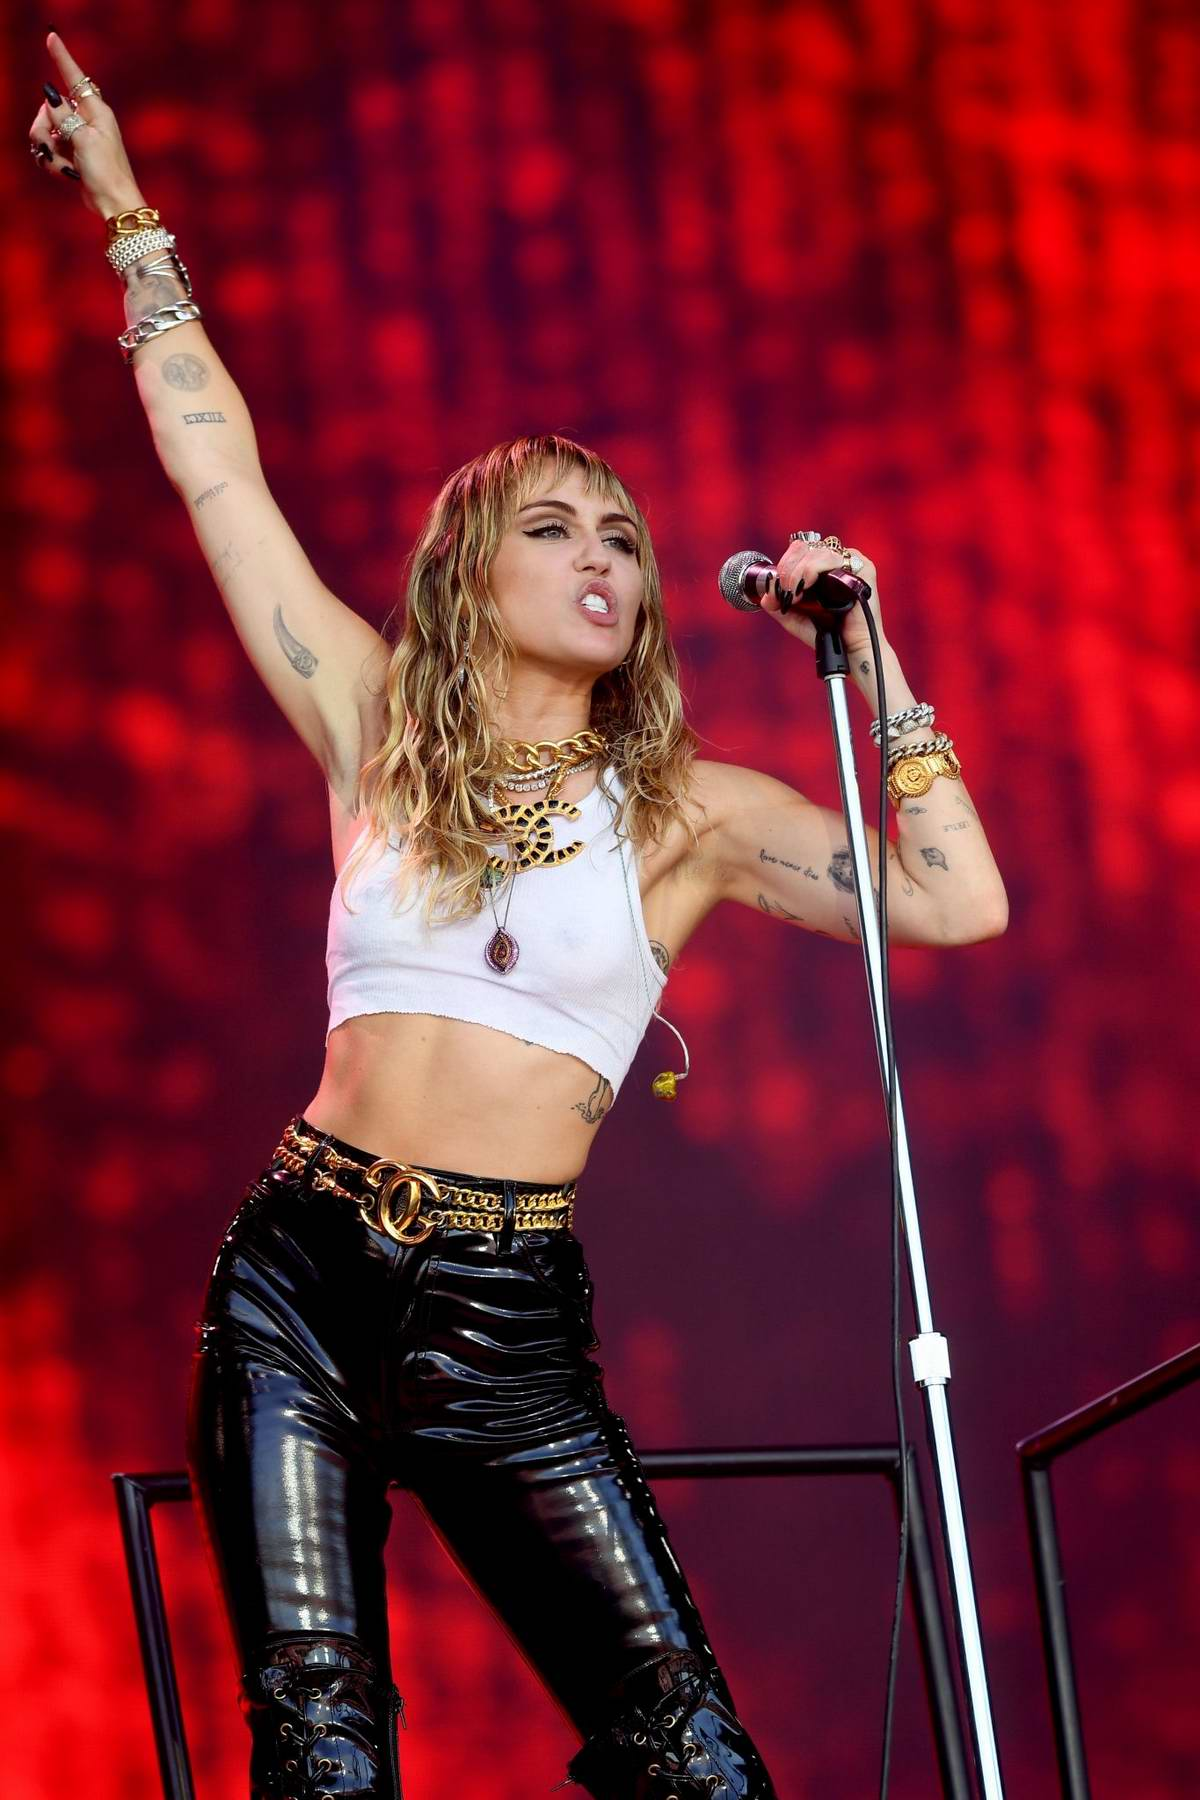 Miley Cyrus performs on the Pyramid stage during day five of Glastonbury Festival at Worthy Farm, Pilton in Glastonbury, UK